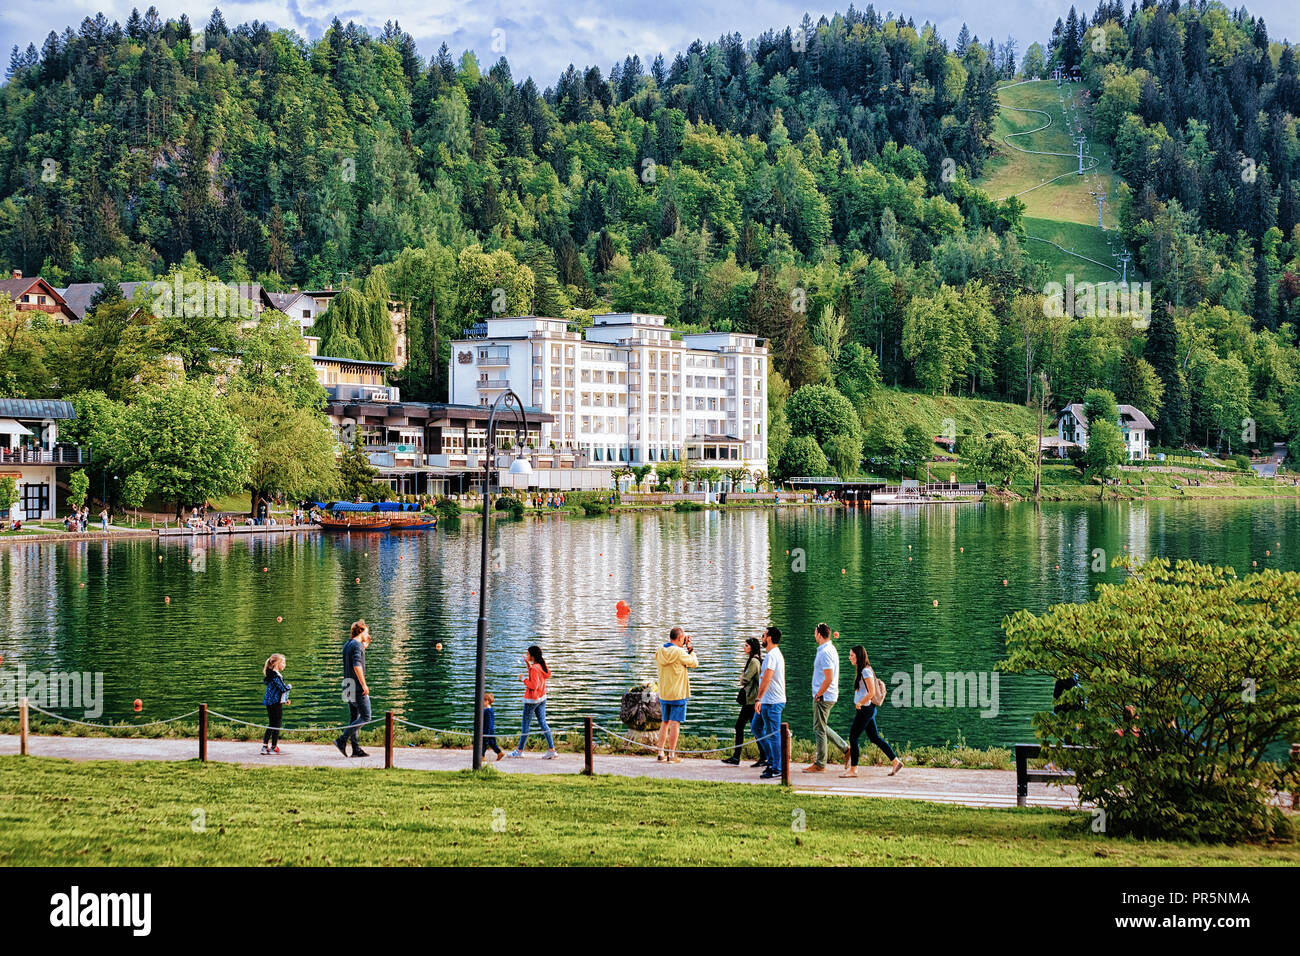 Bled, Slovenia - April 28, 2018: People passing by at Bled Lake, Slovenia Stock Photo